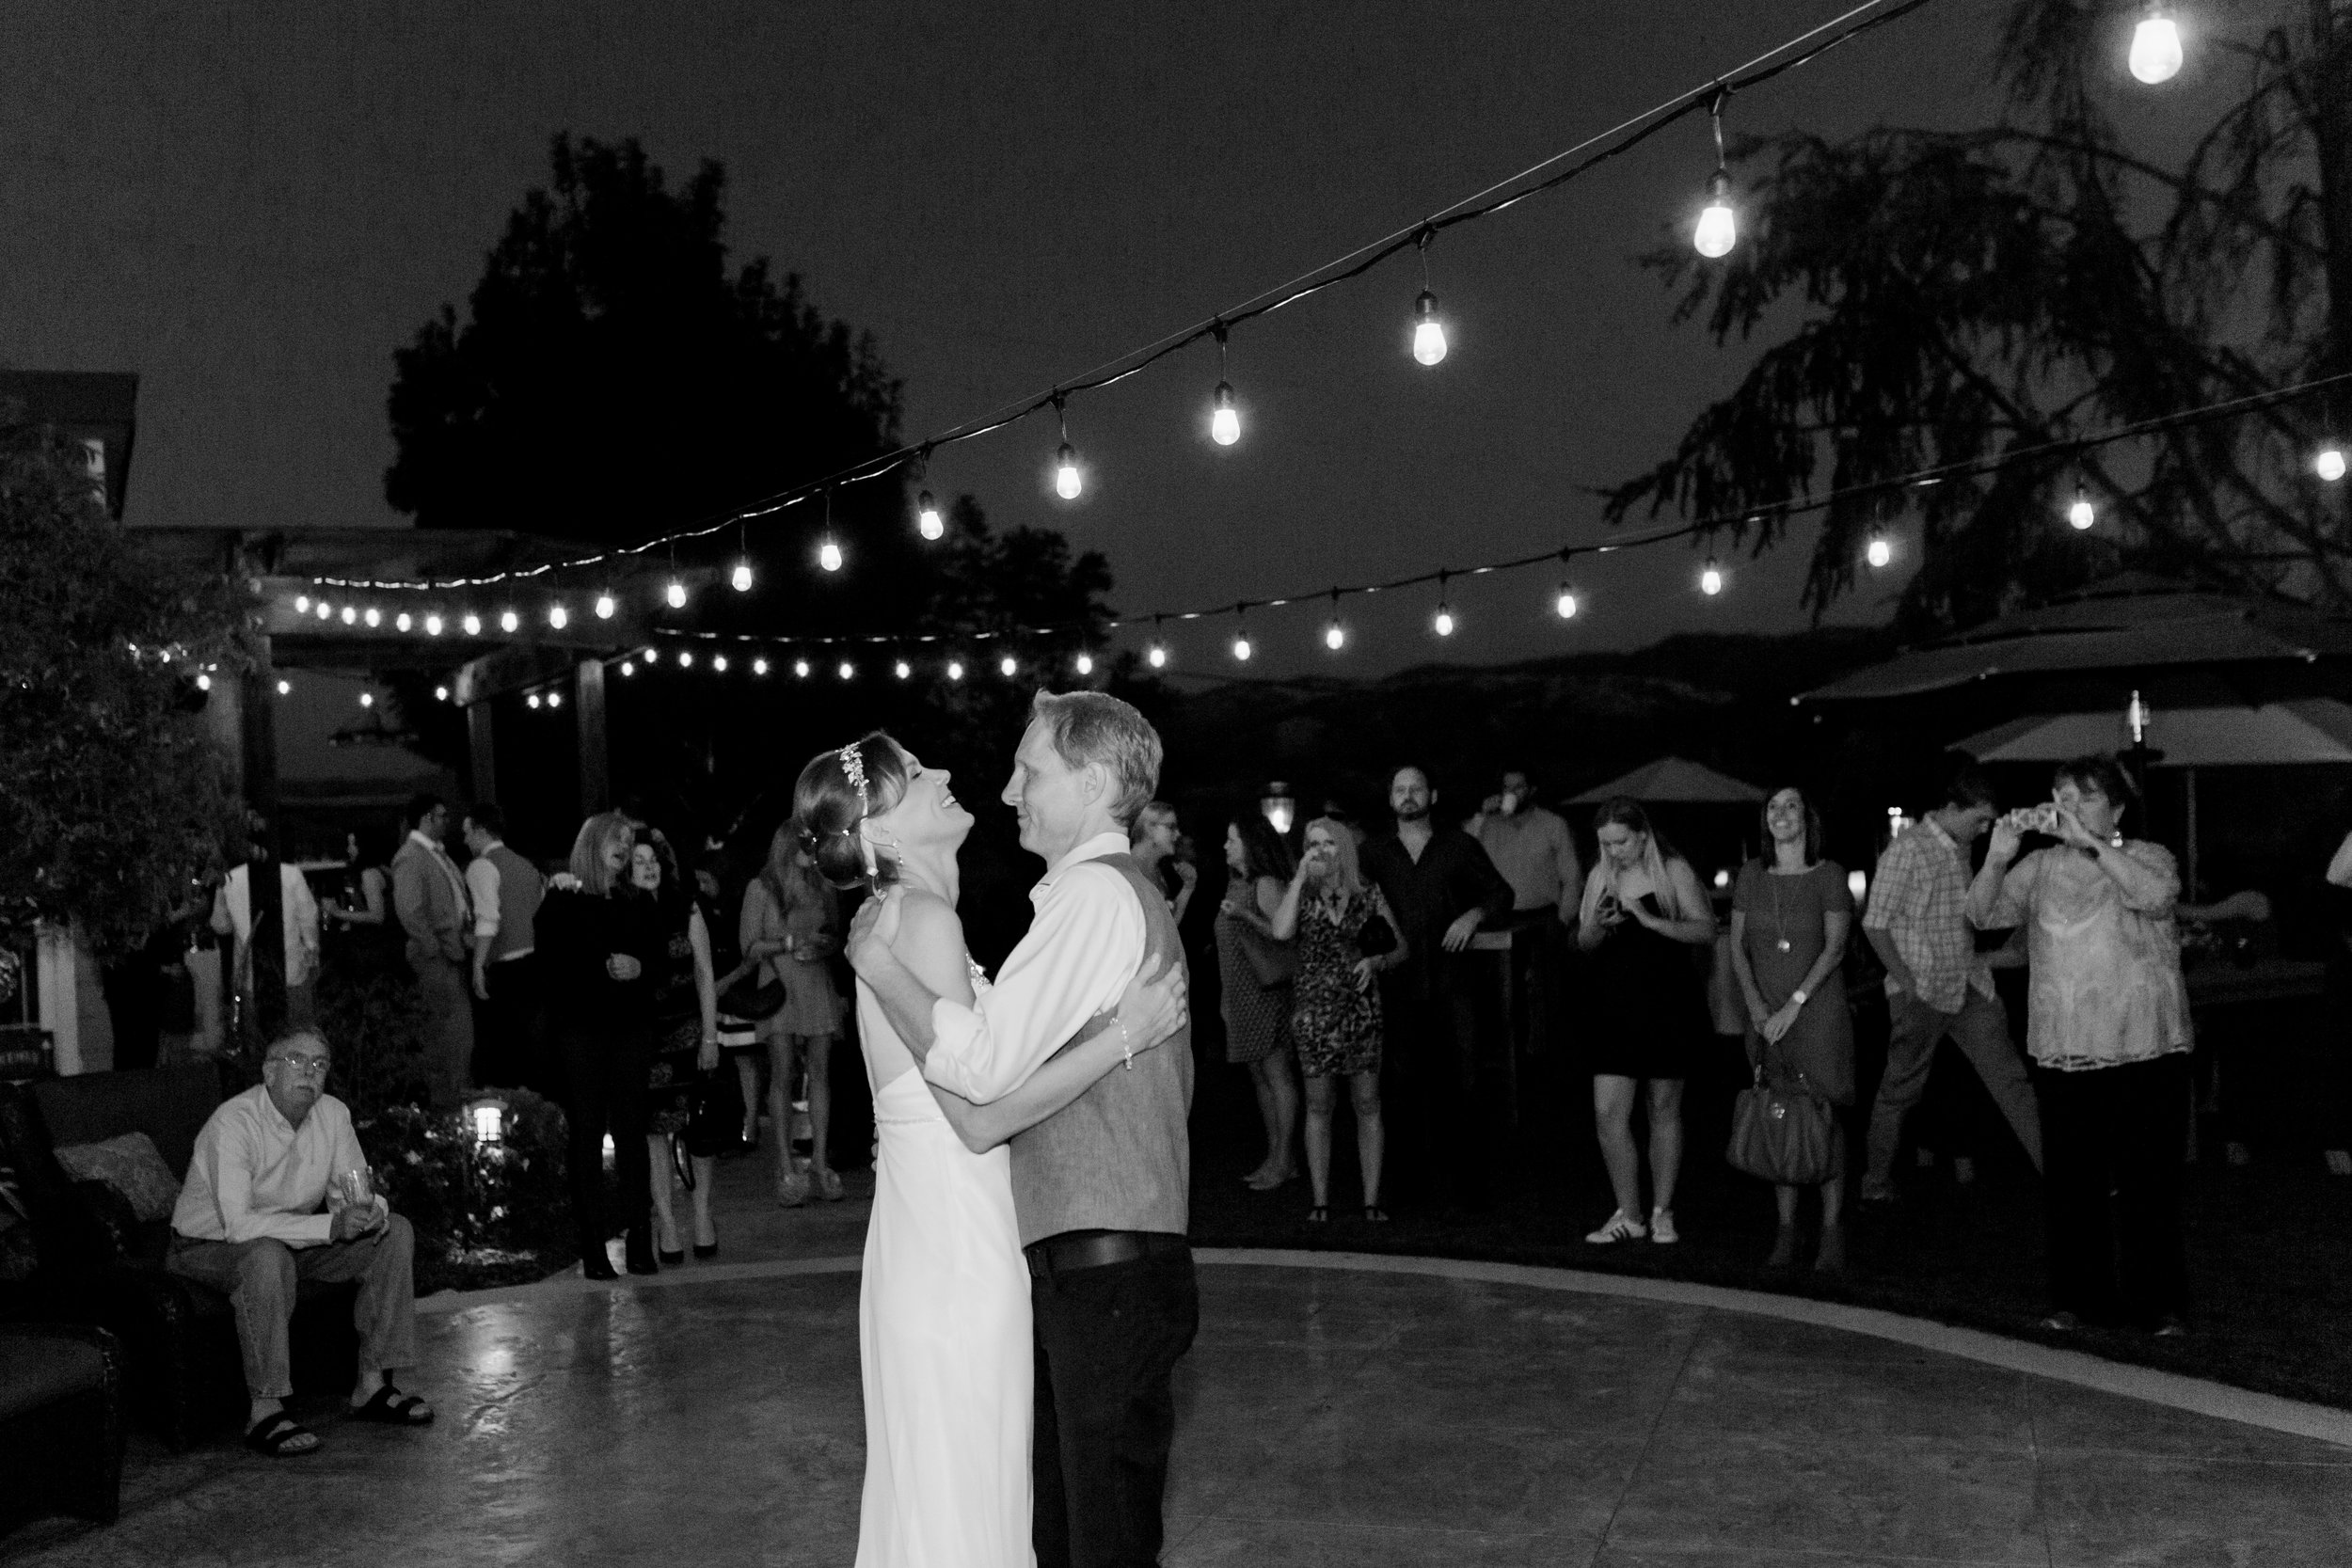 intimate-backyard-wedding-sonoma-california-36.jpg